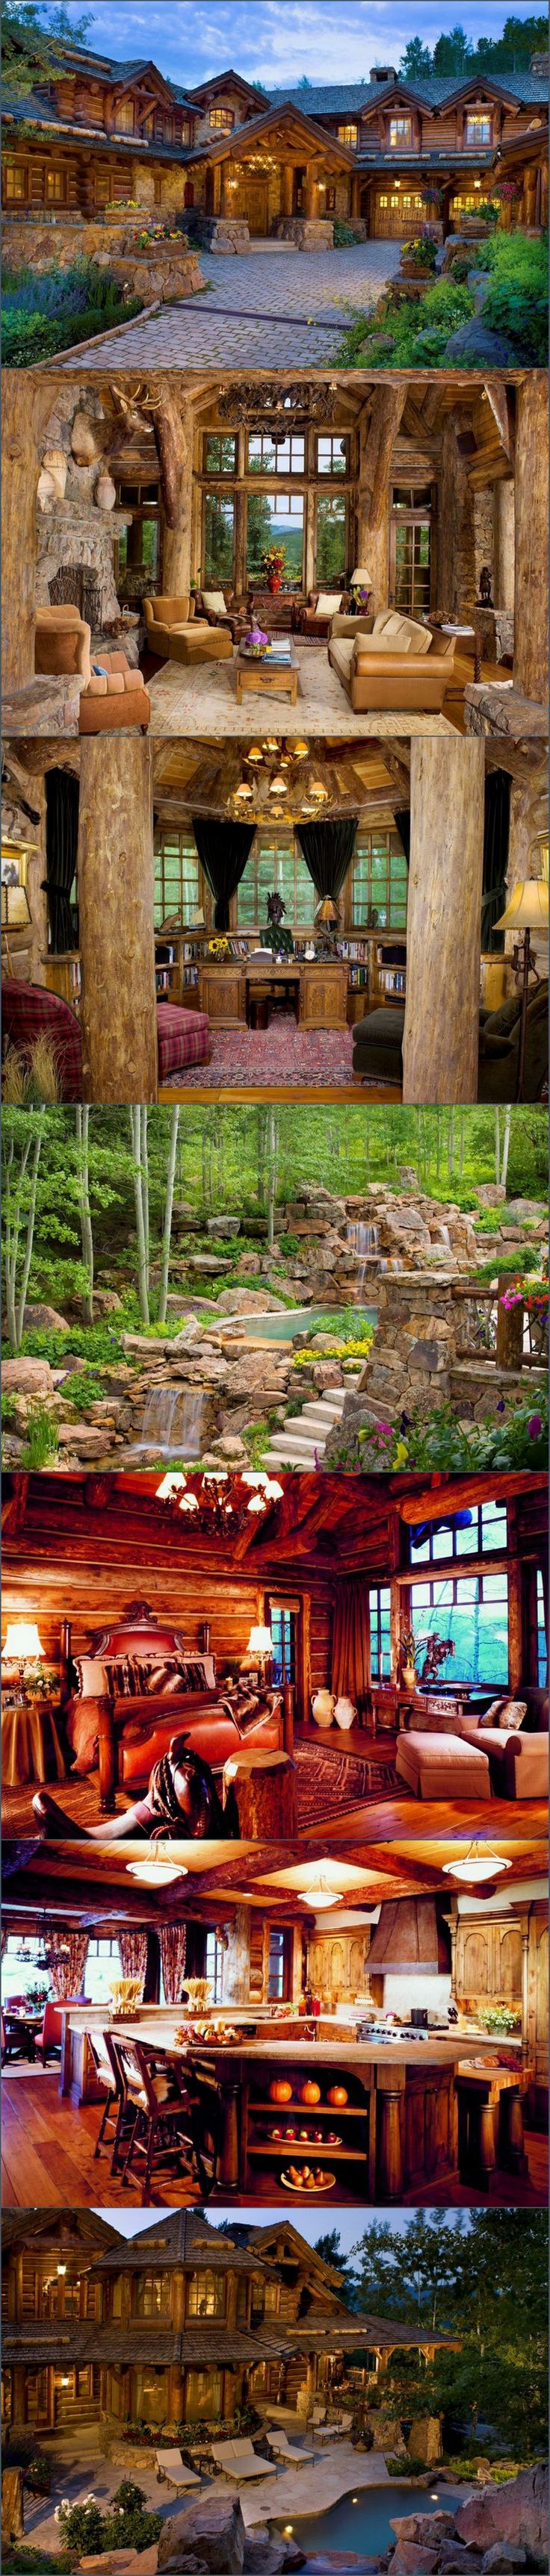 Strawberry Park Lodge - Beaver Creek, Colorado - Style Estate - especially love that pool!!!